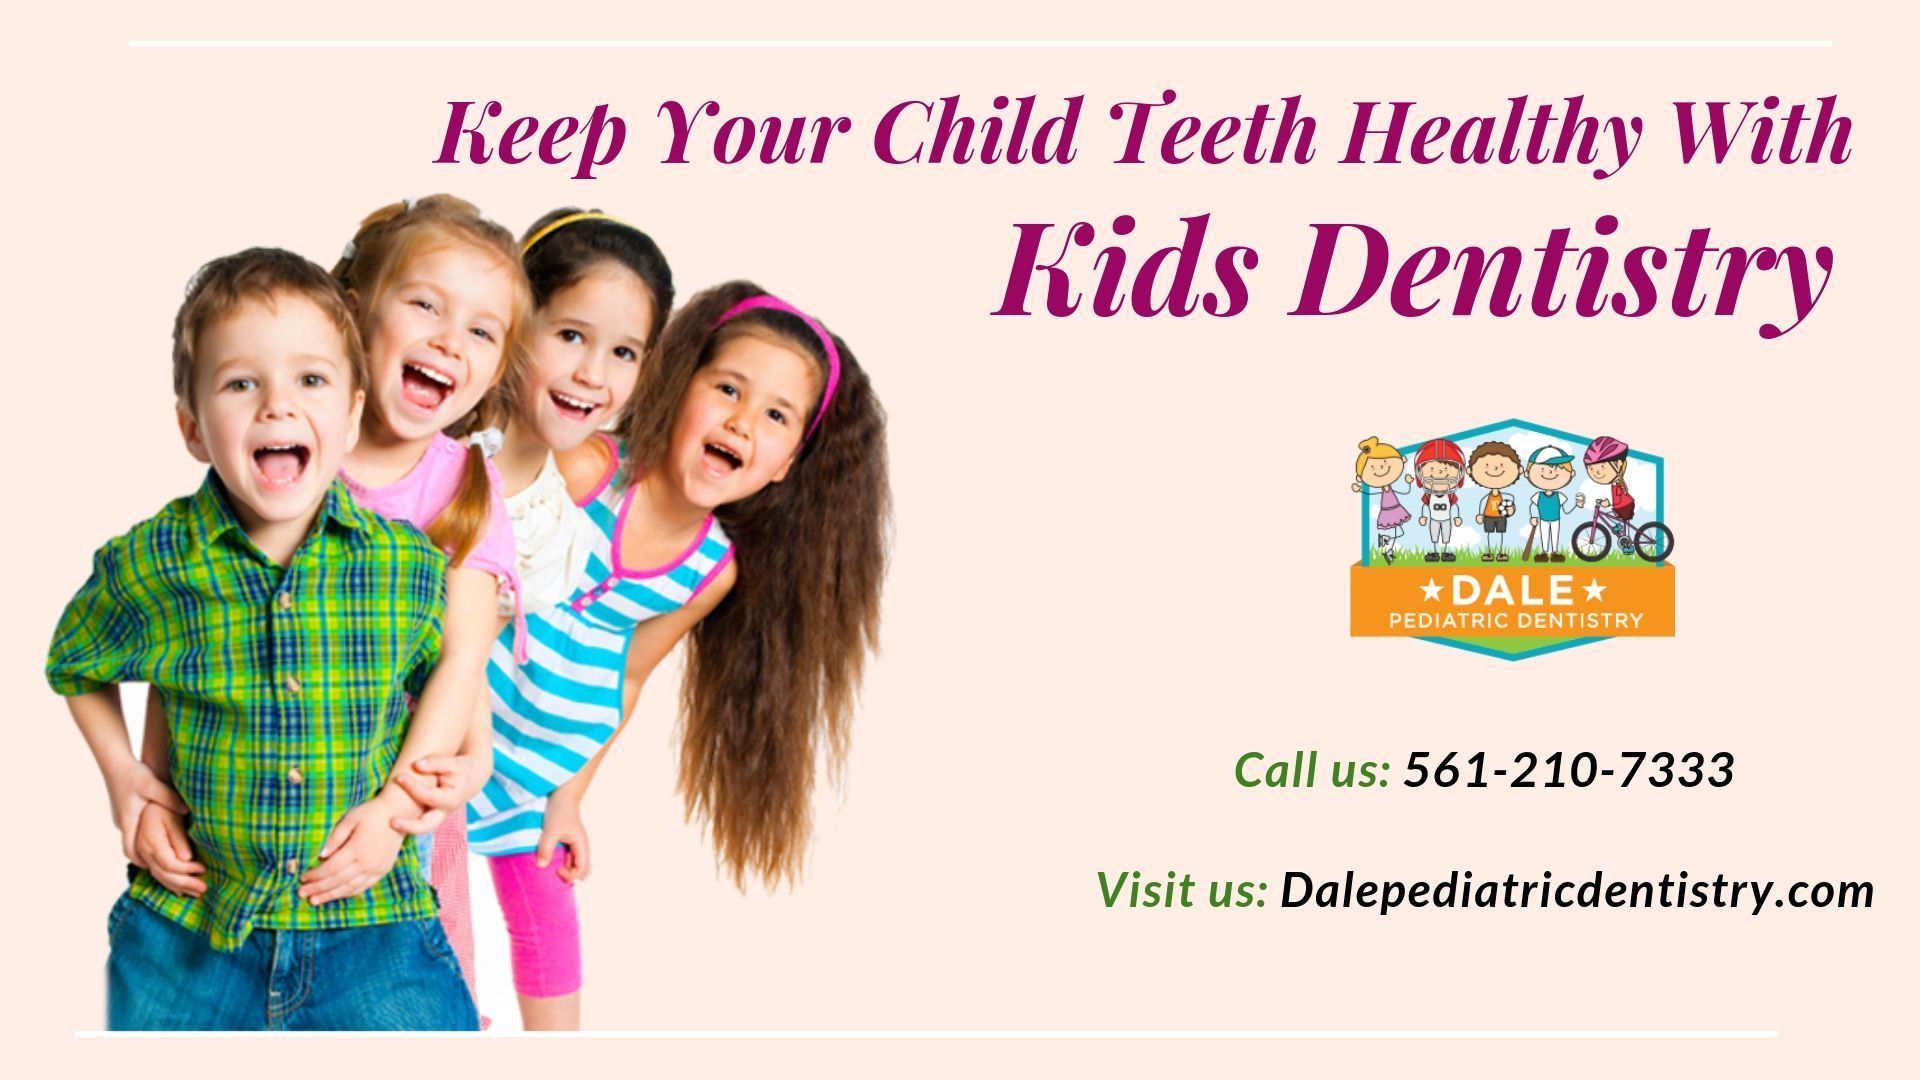 Are you searching for expert kids dentistry? Our Dale